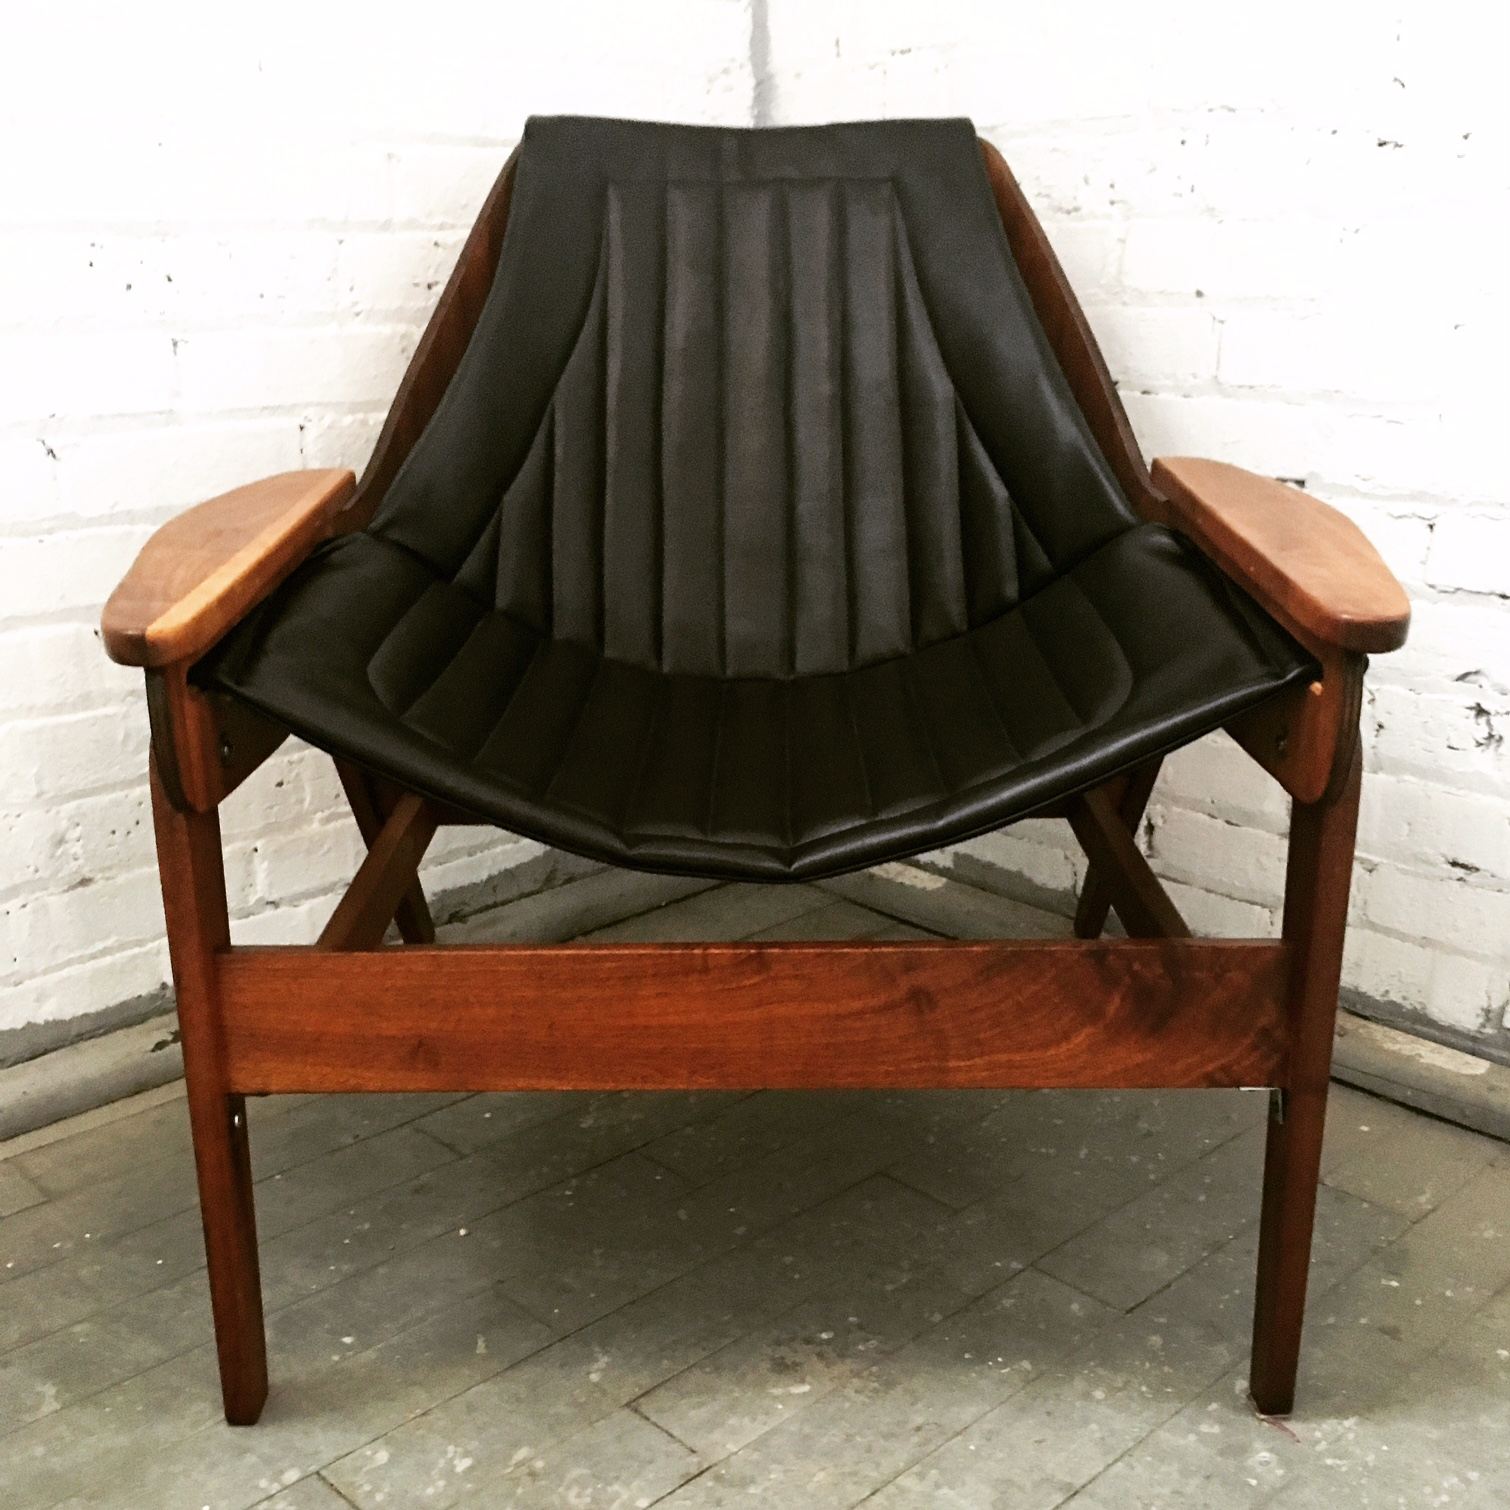 Recovered Interior Jerry Johnson Sling Chair